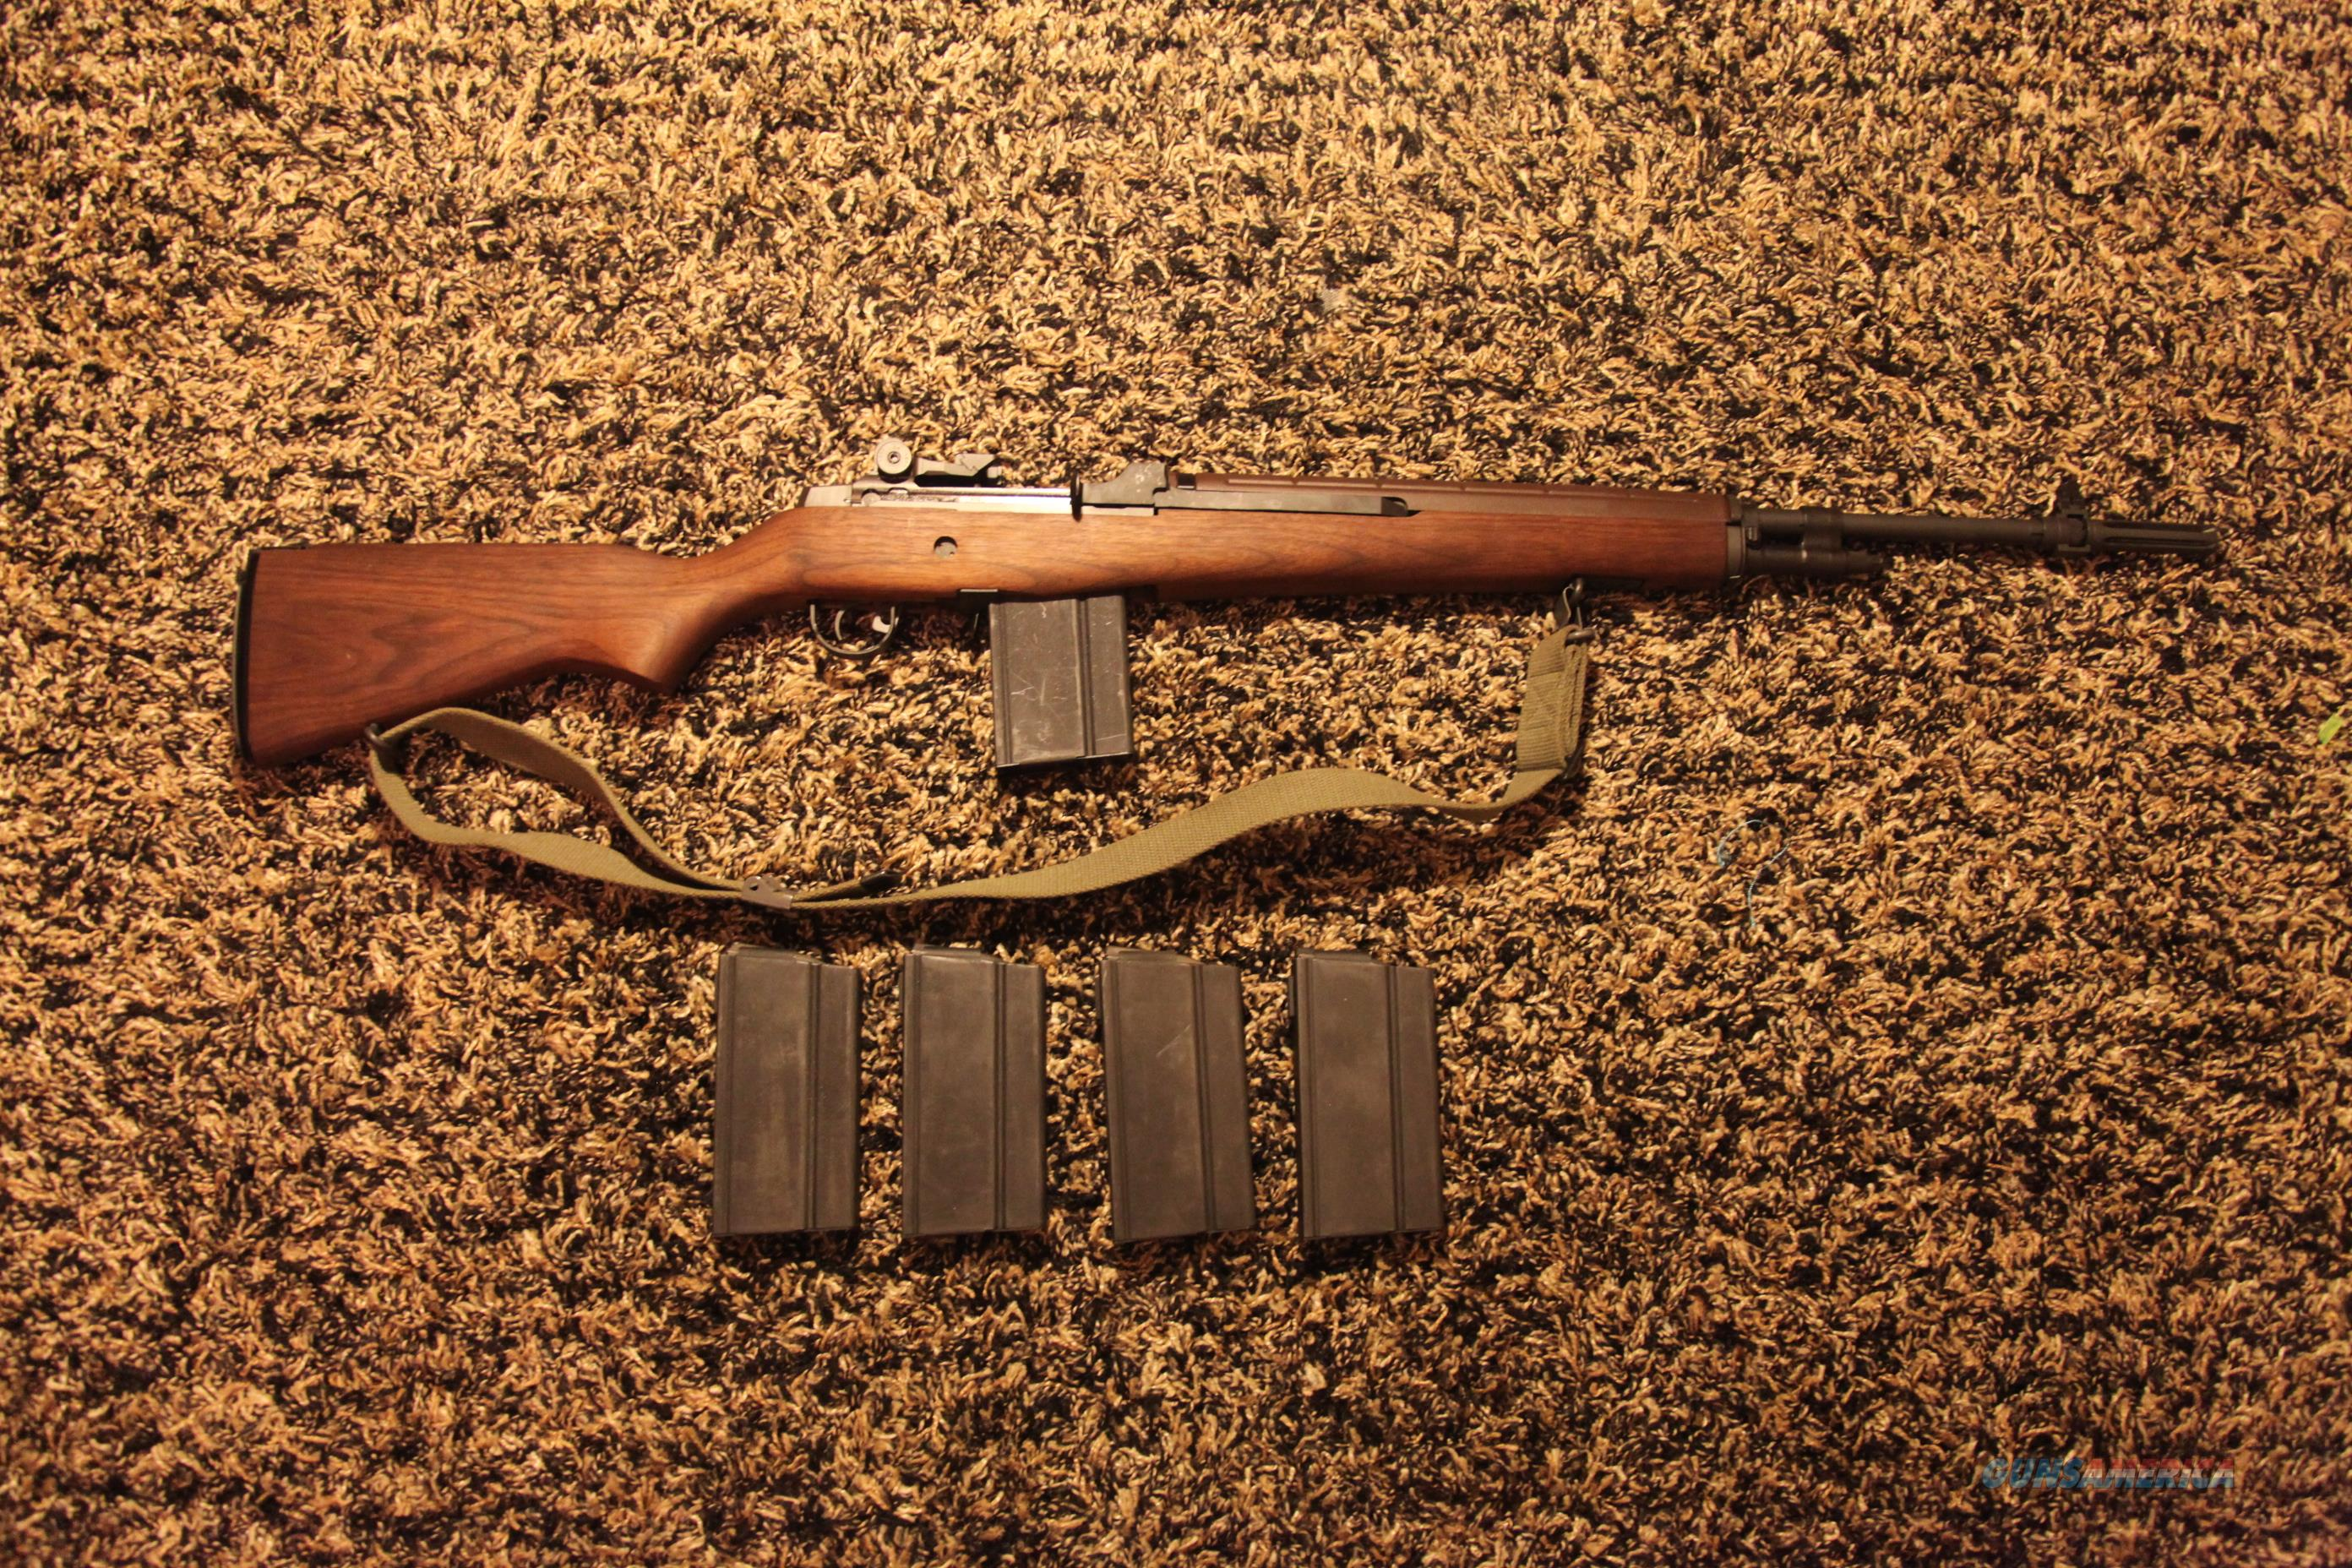 SPRINGFIELD M1A1 LOADED W/ 20-RD MAGS & SLING  Guns > Rifles > Springfield Armory Rifles > M1A/M14